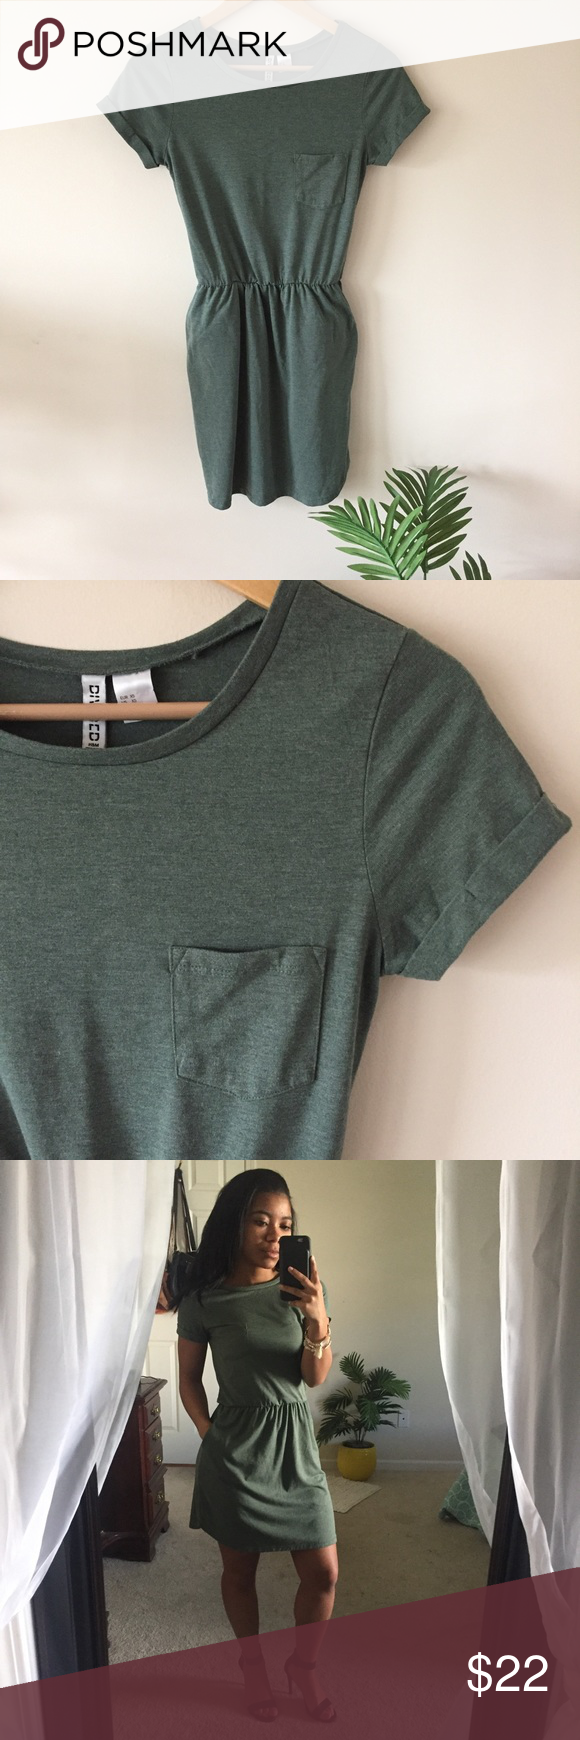 872b216d5beeb H M • Olive T-Shirt Dress DIVIDED Olive Green Dress. New without tags and